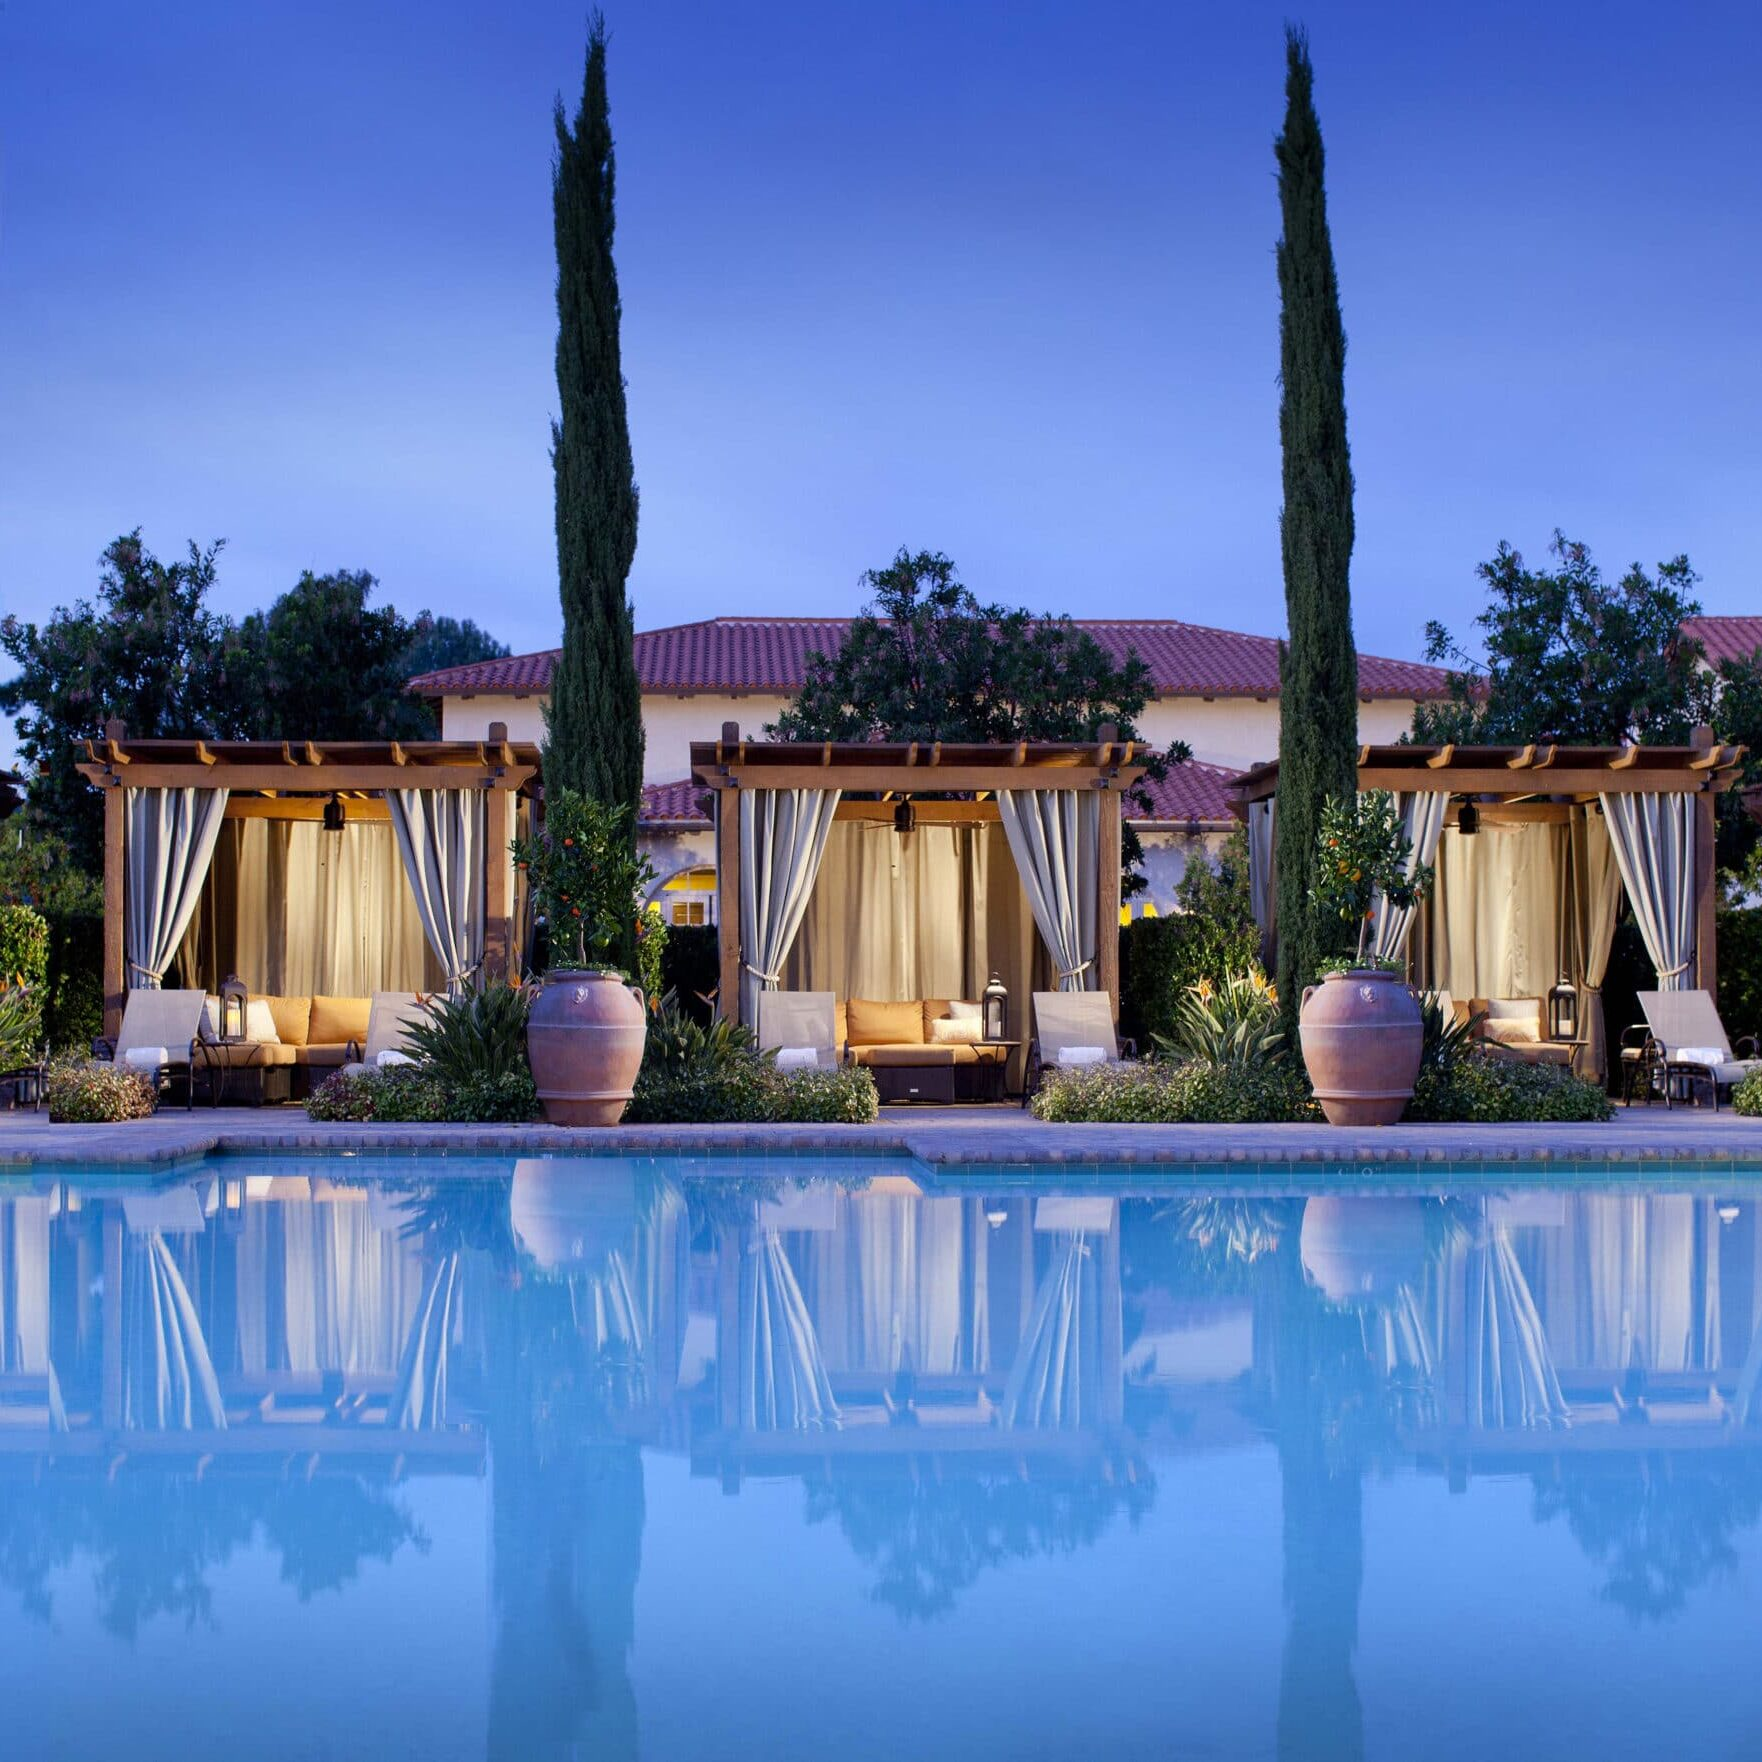 The spa pool and cabanas with evening light